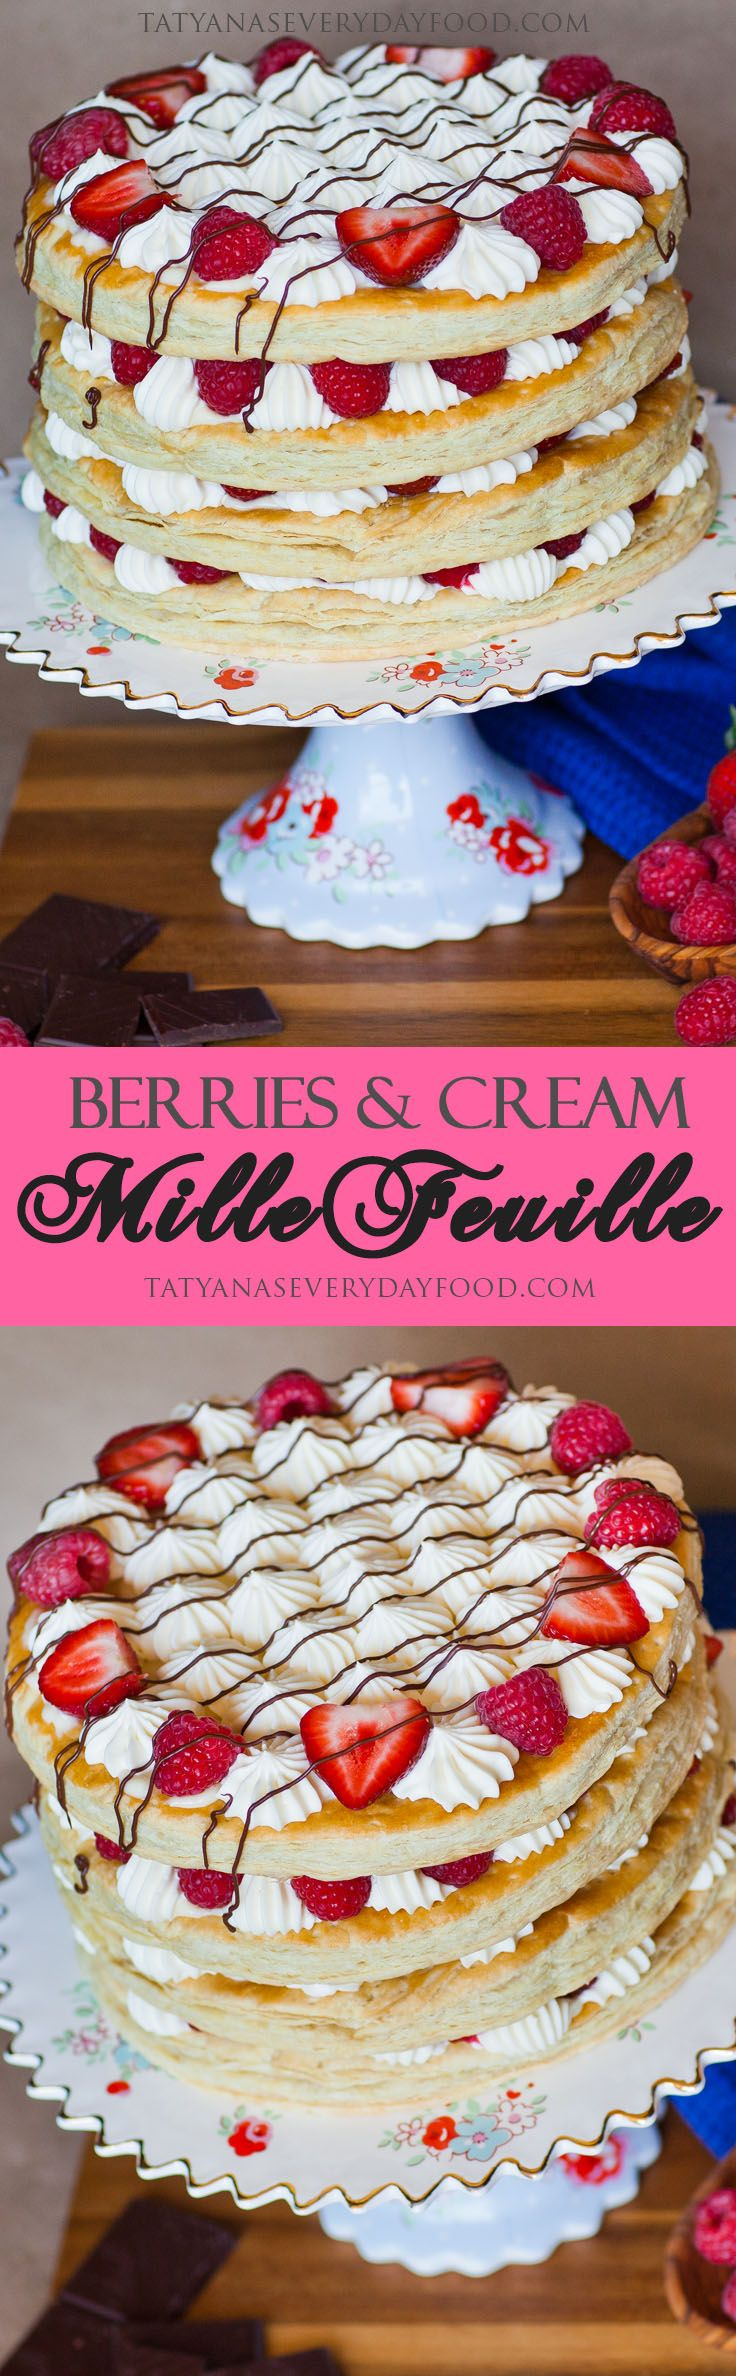 Berries and Cream Mille-Feuille Cake - Tatyanas Everyday Food